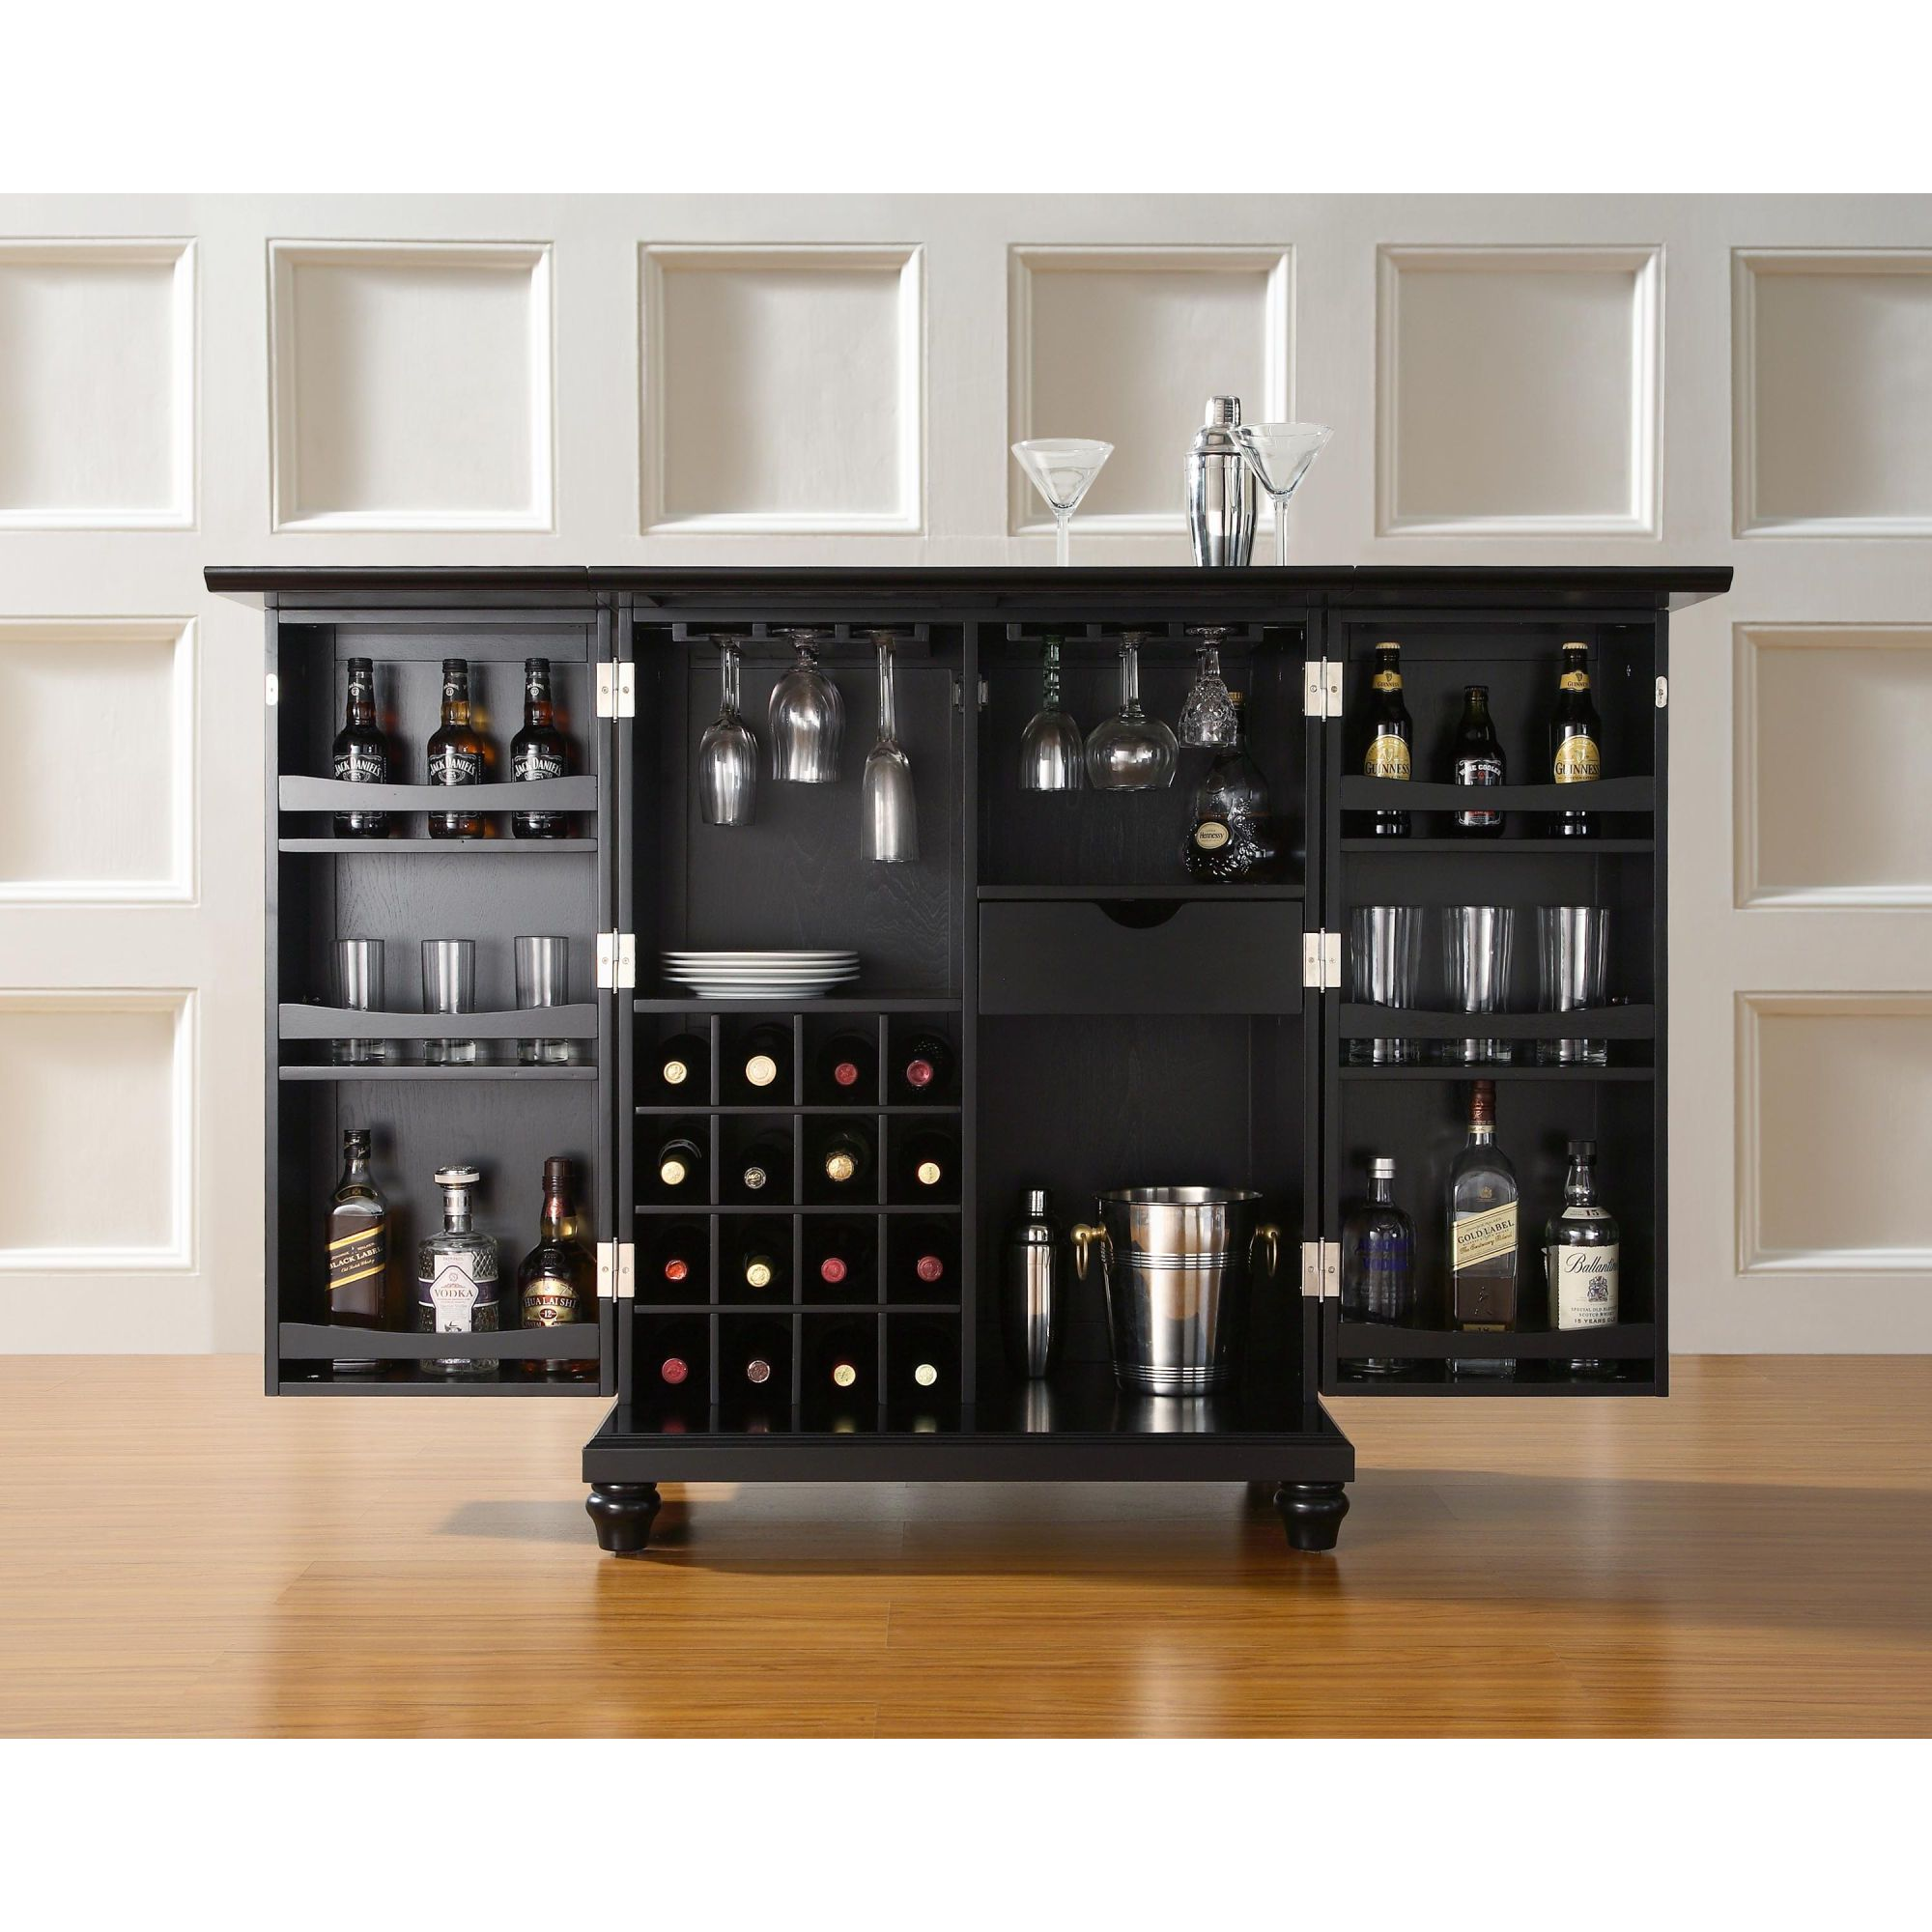 Minibar | For the home/Decor | Pinterest